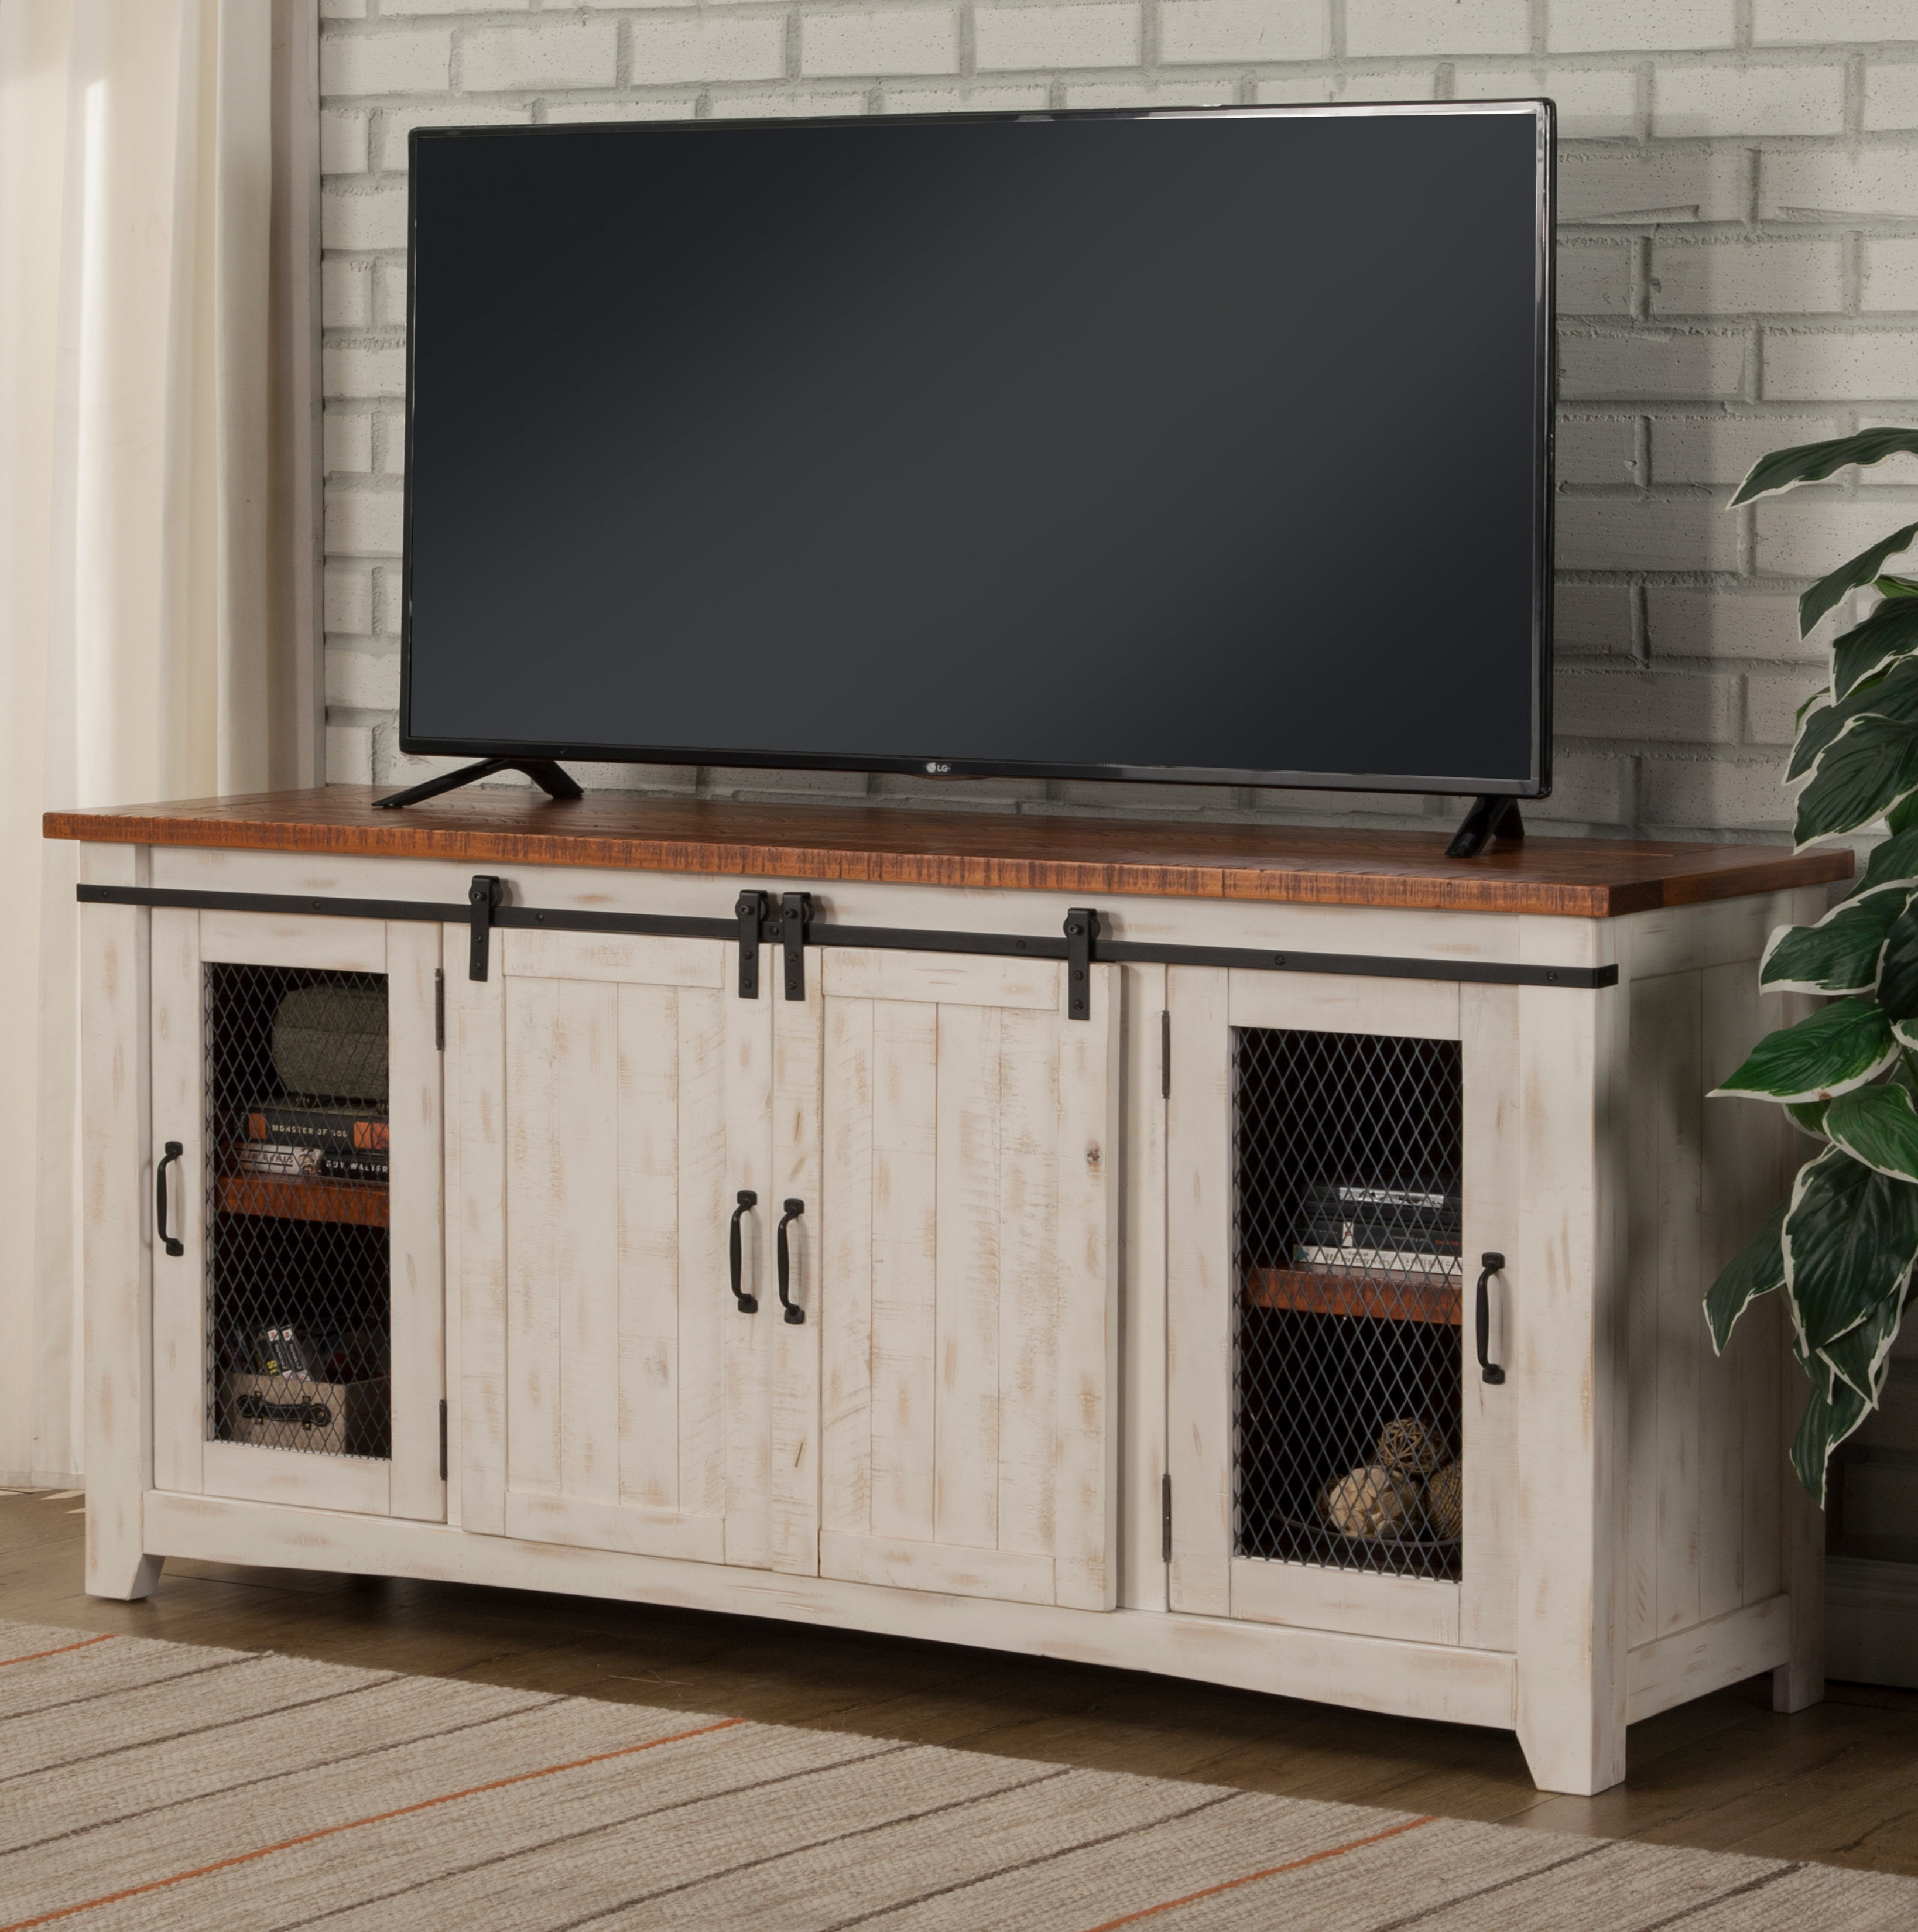 36 Inch Tall Tv Stand | Wayfair For Edwin Black 64 Inch Tv Stands (View 5 of 30)